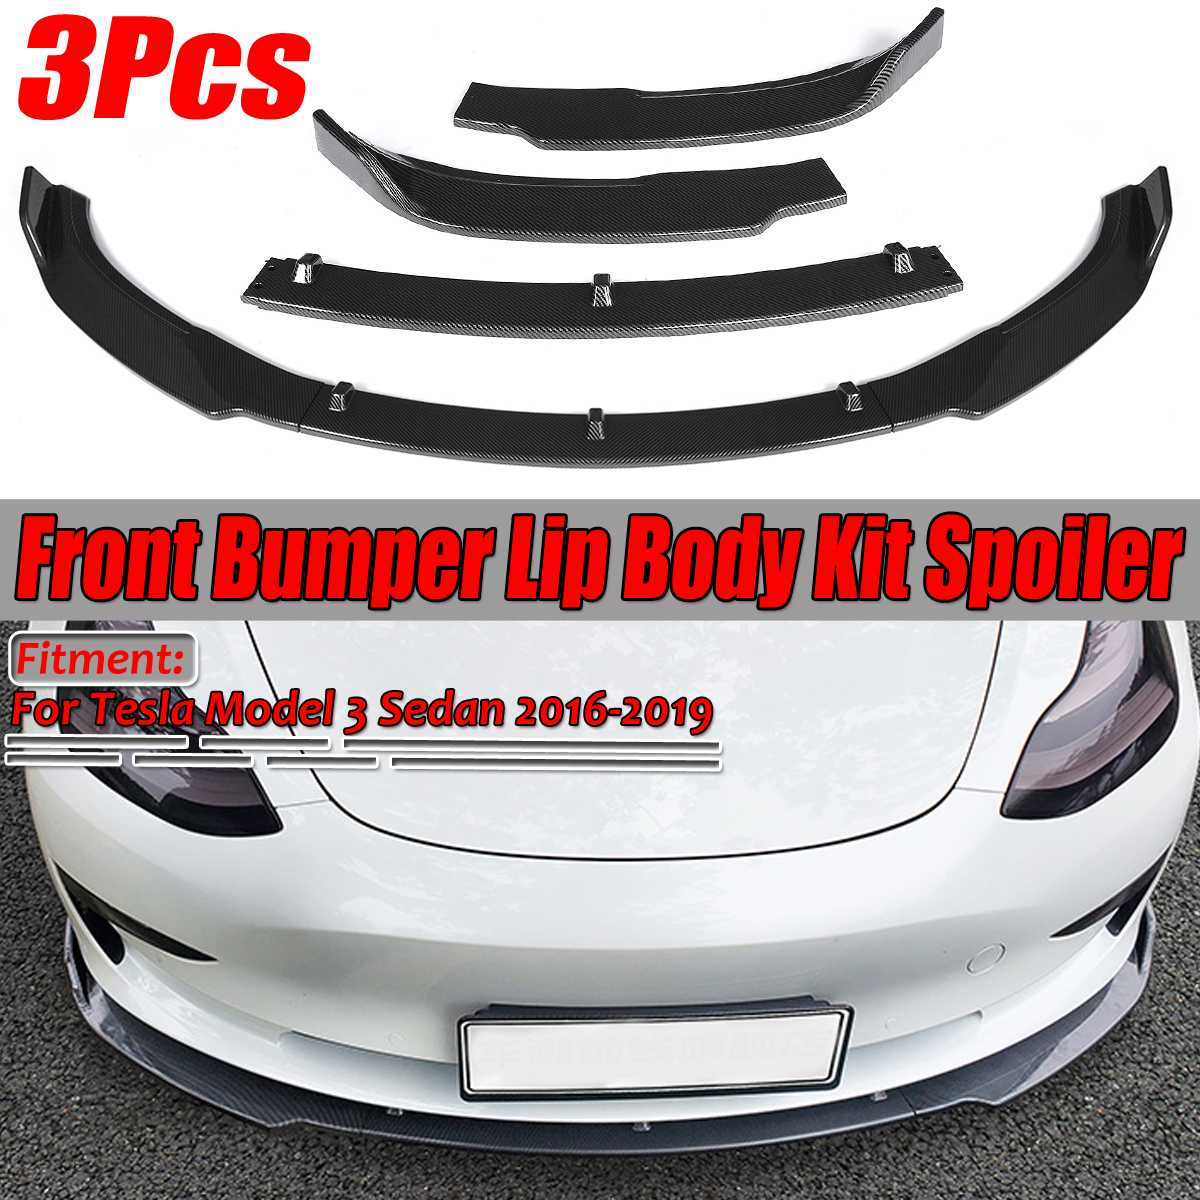 New 3Pcs Carbon Fiber Look/Black Car Front Bumper Splitter Lip Body Kit Spoiler Diffuser Guard For Tesla Model 3 Sedan 2016-2019